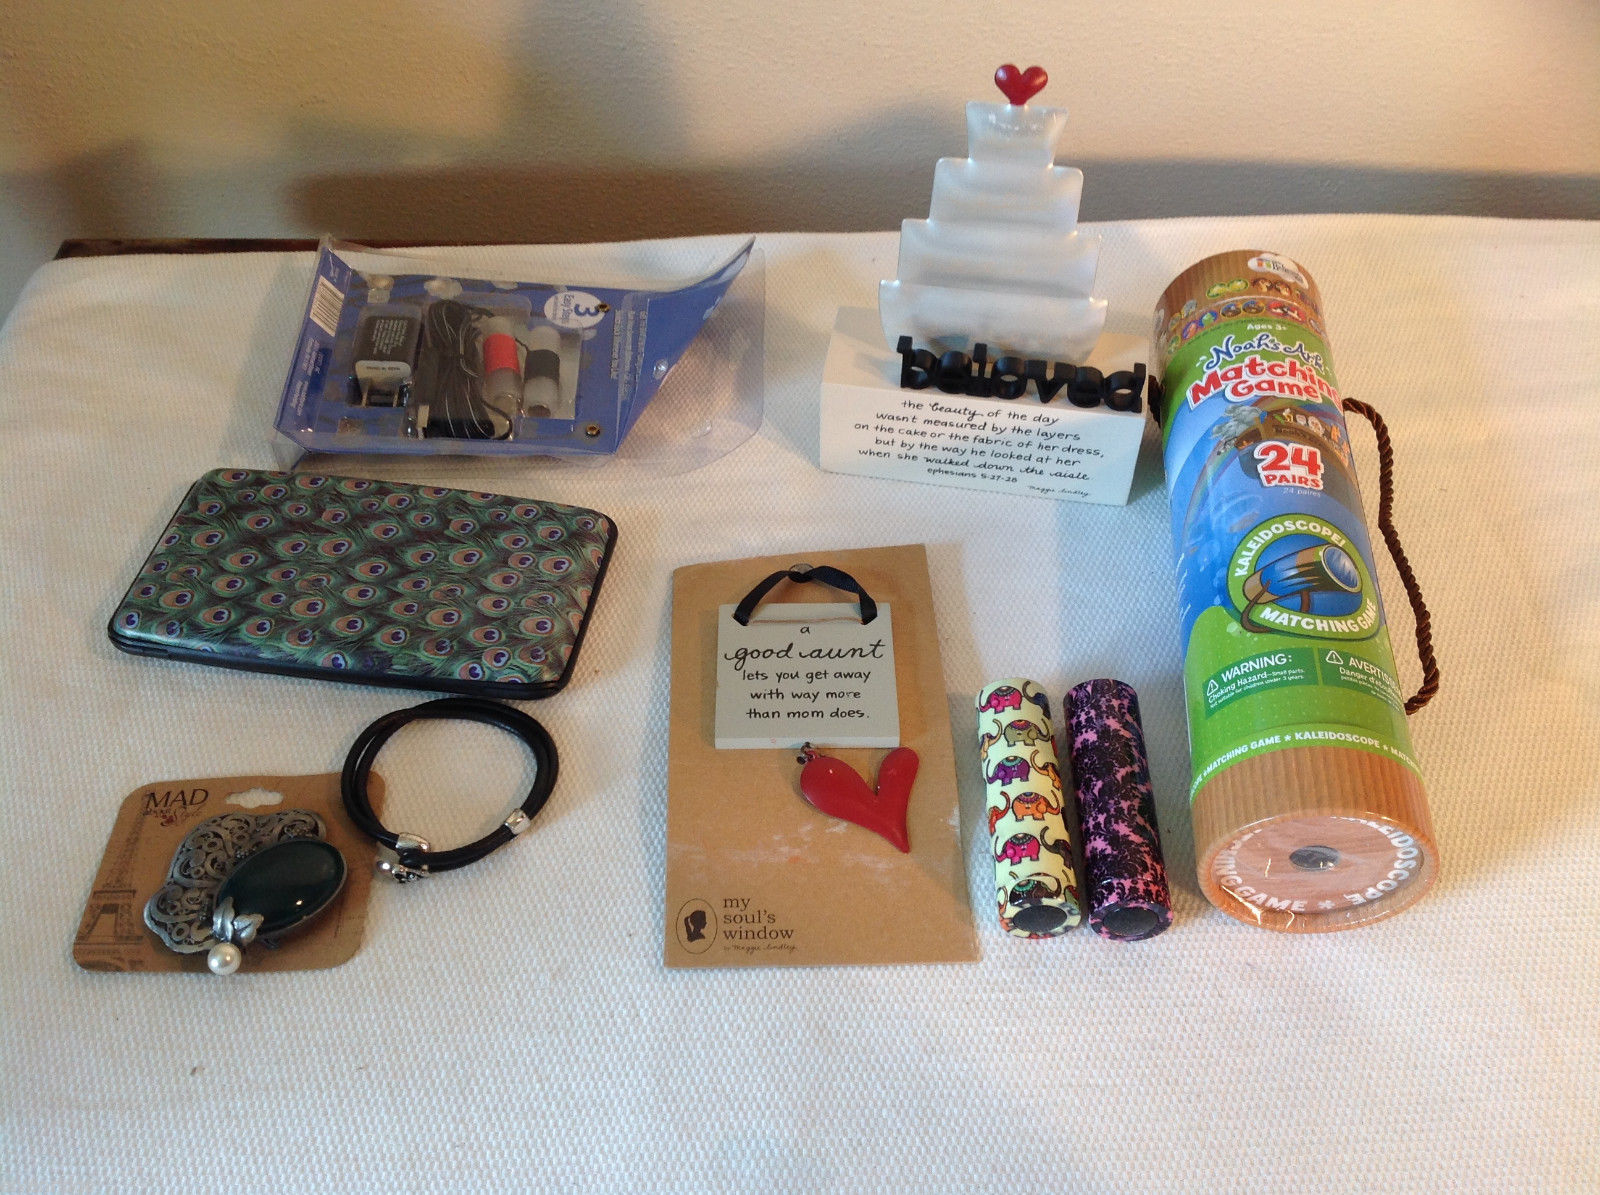 9 pc Assorted Stuff Lot - Matching Game, Led Lights, Wall Plaque, Wallet